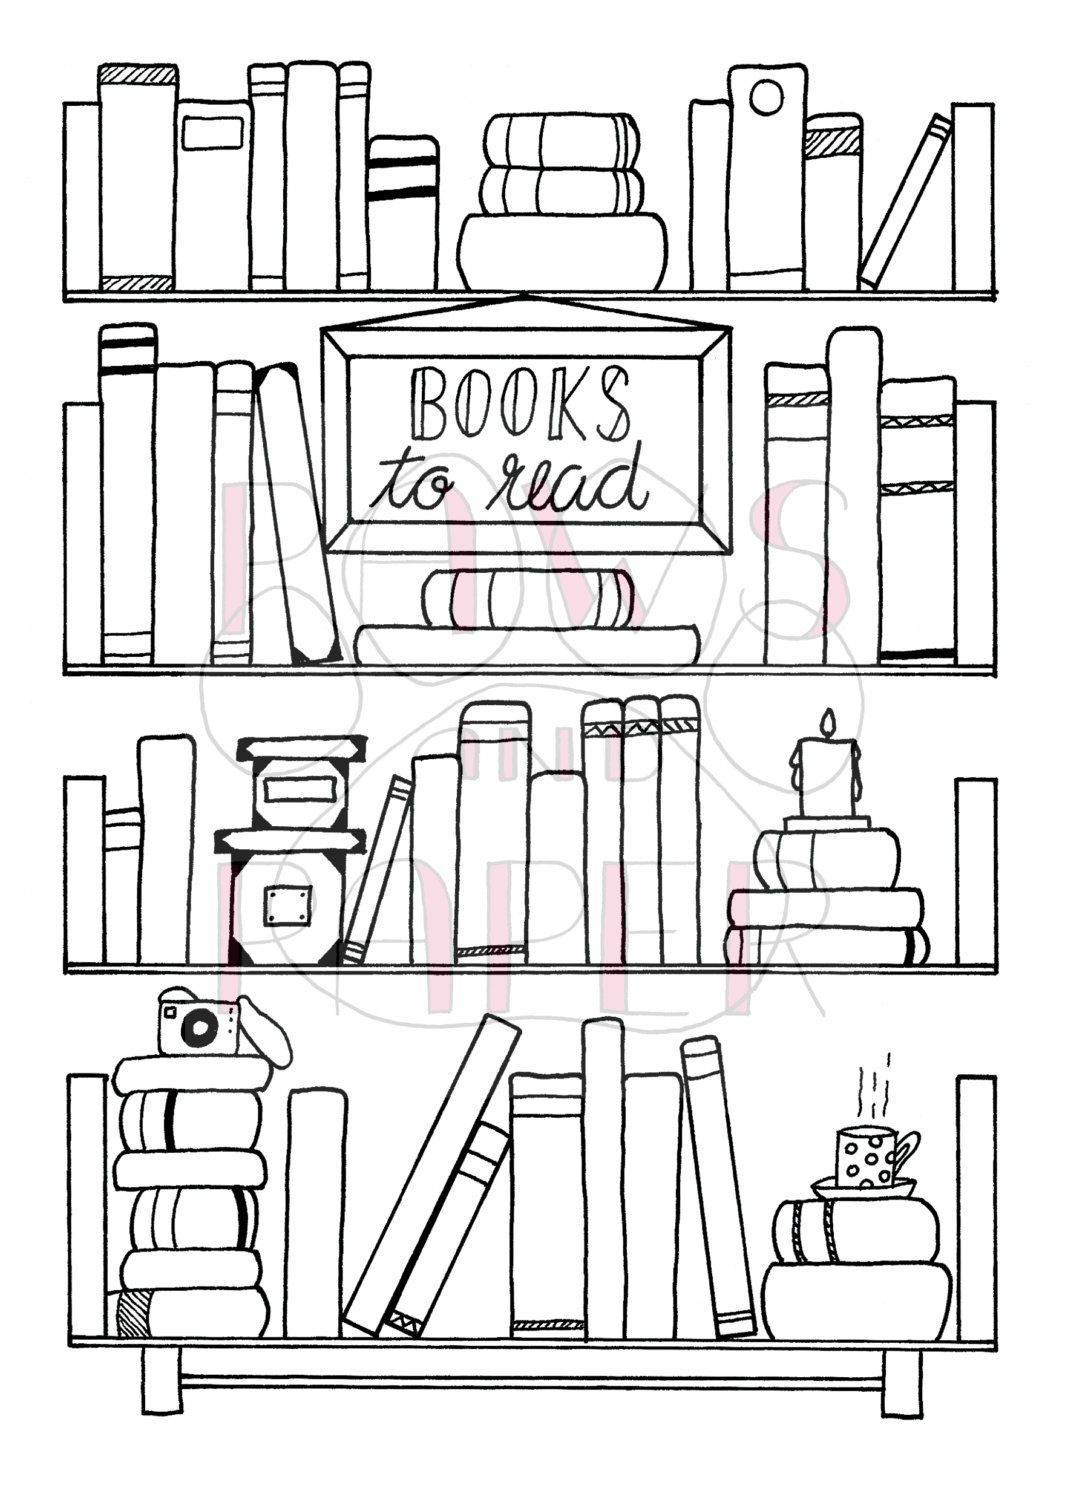 Books Printable, Books to Read, Reading Planner, Reading